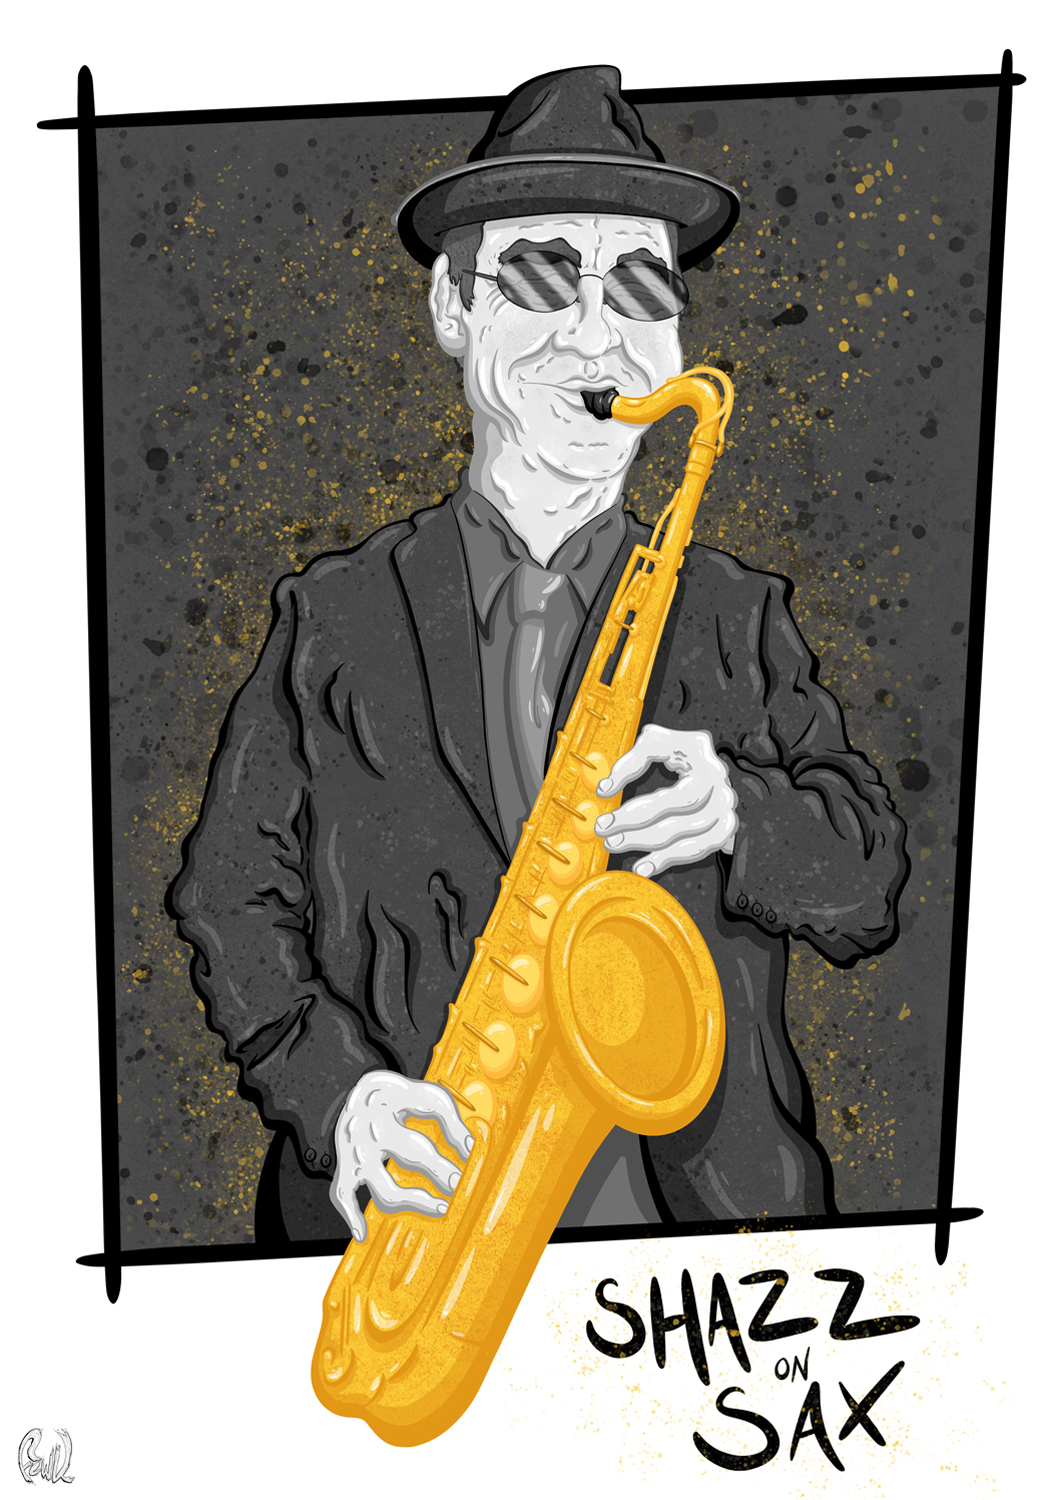 Musician playing saxophone, illustration